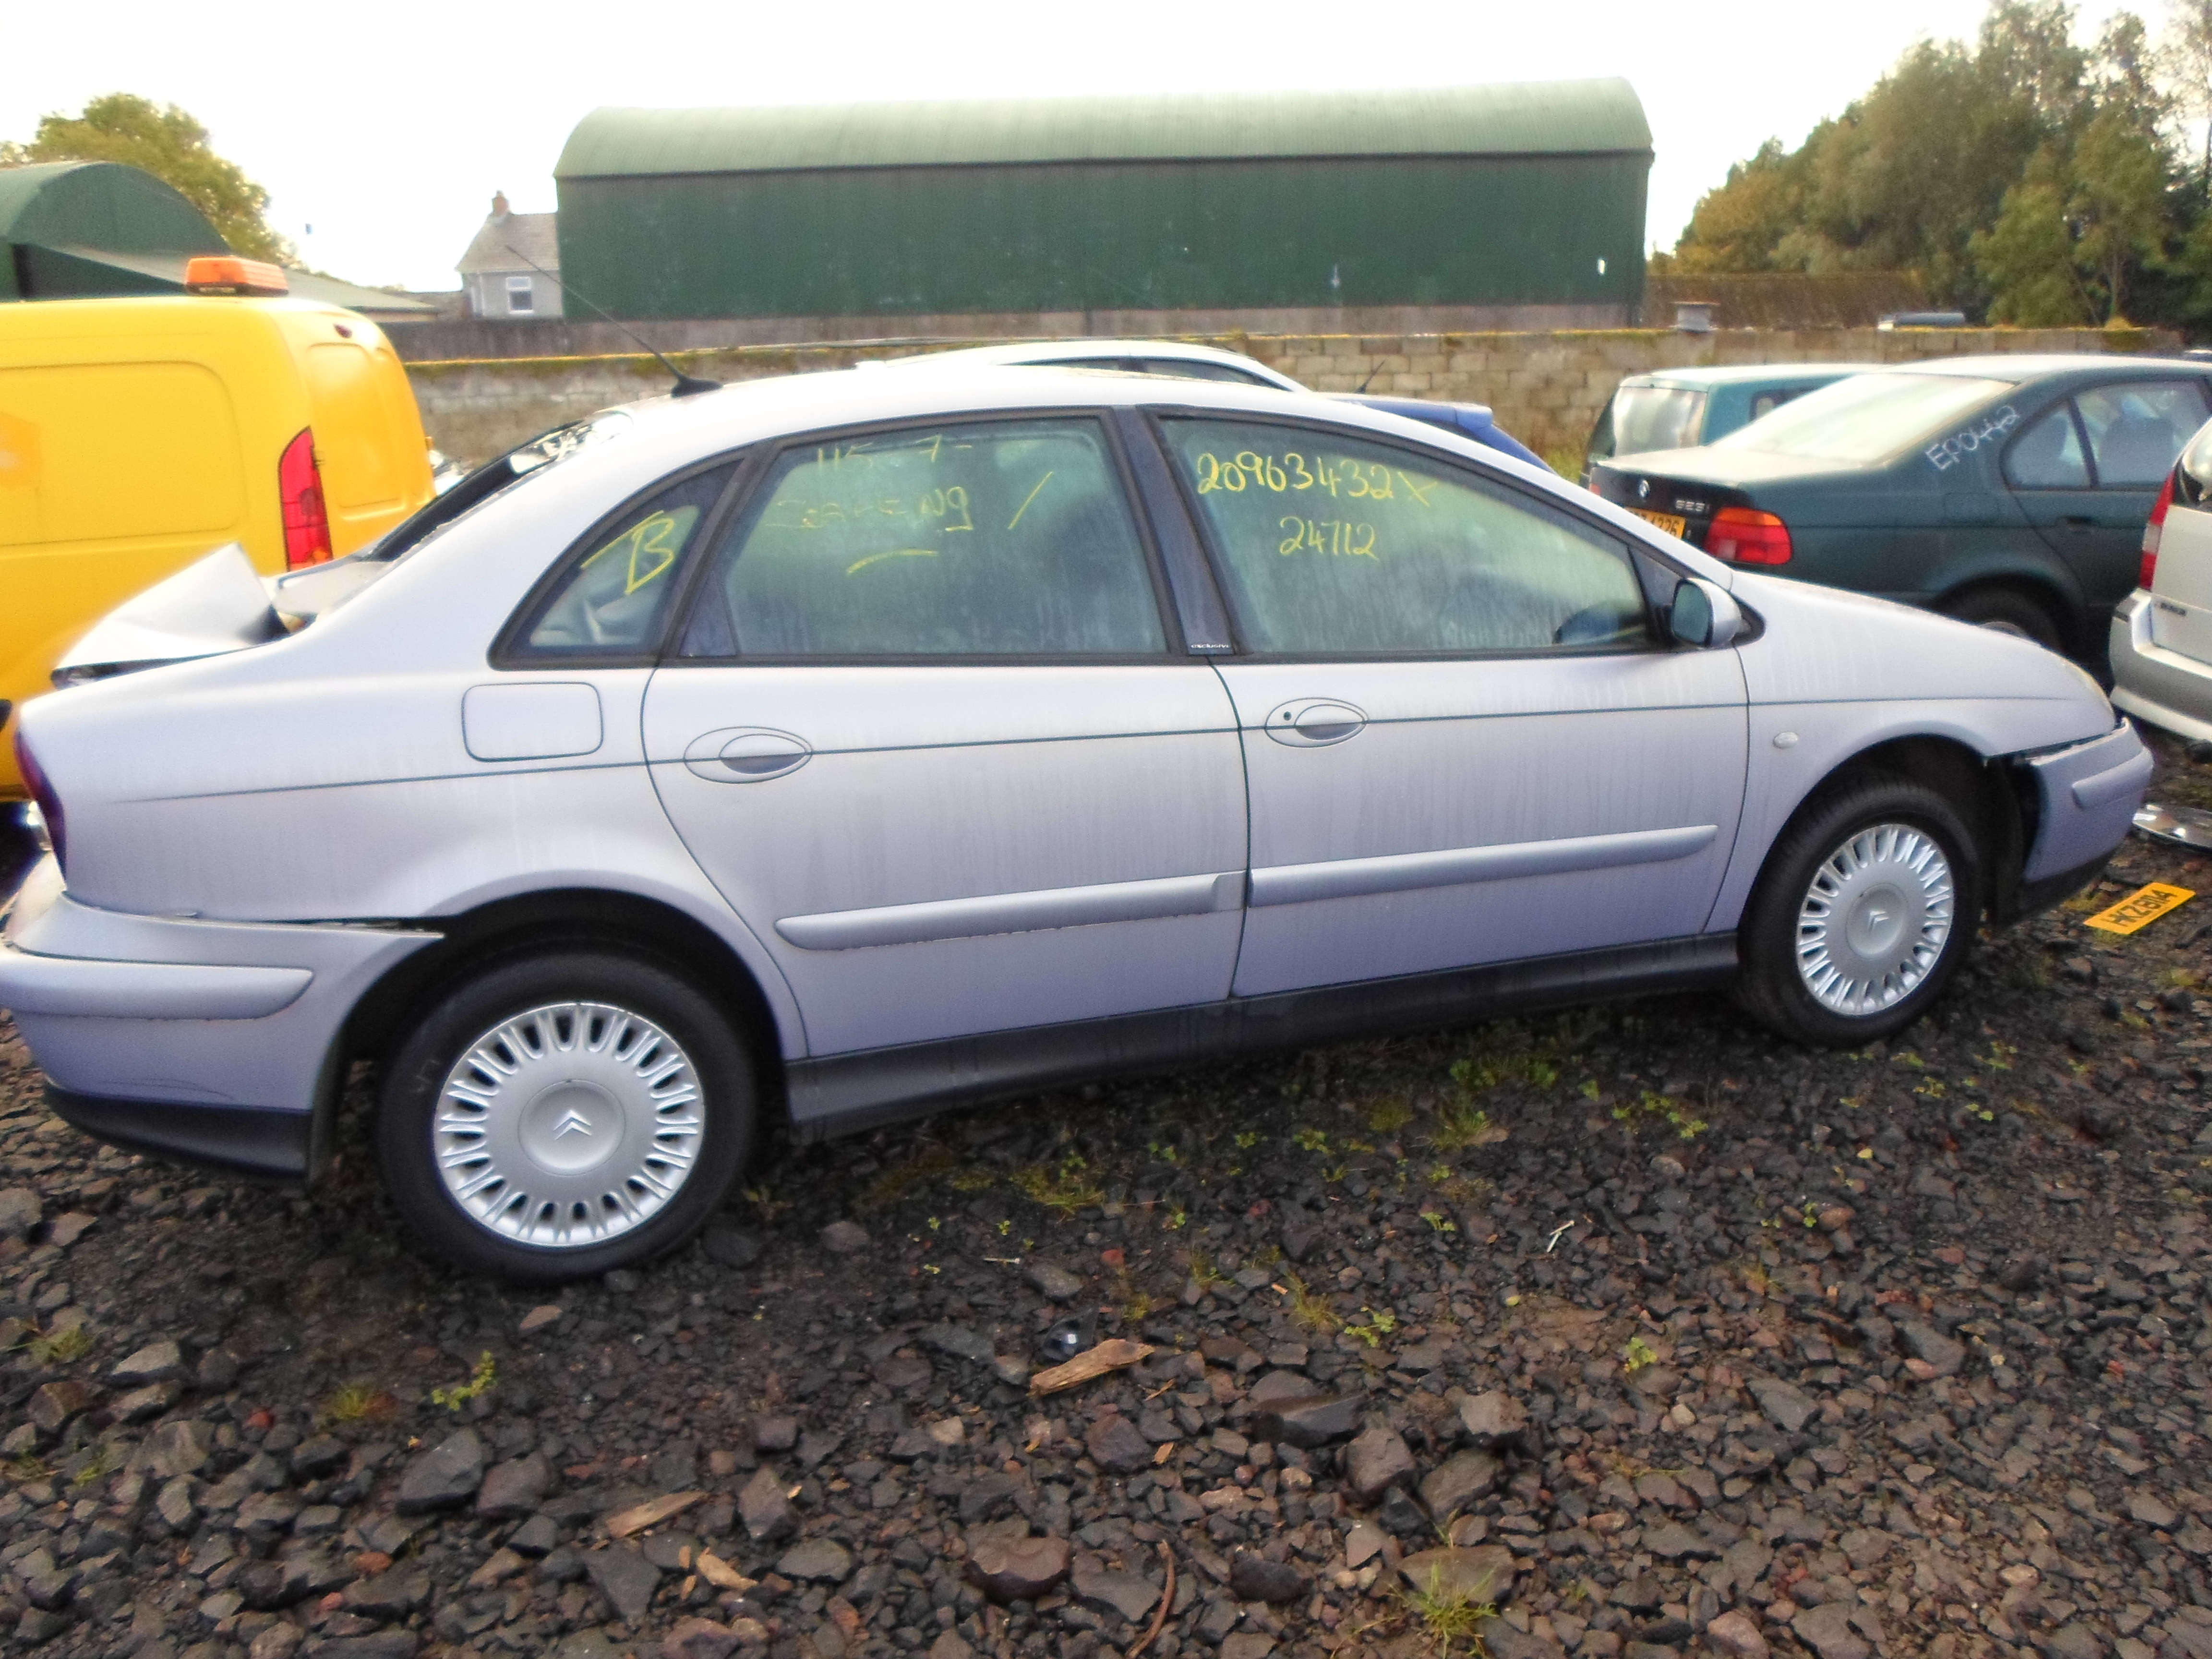 CITROEN C5 HDI EXCLUSIVE SE AUTO 2002 ECU, TRANSPONDER, BSI 2001,2002,